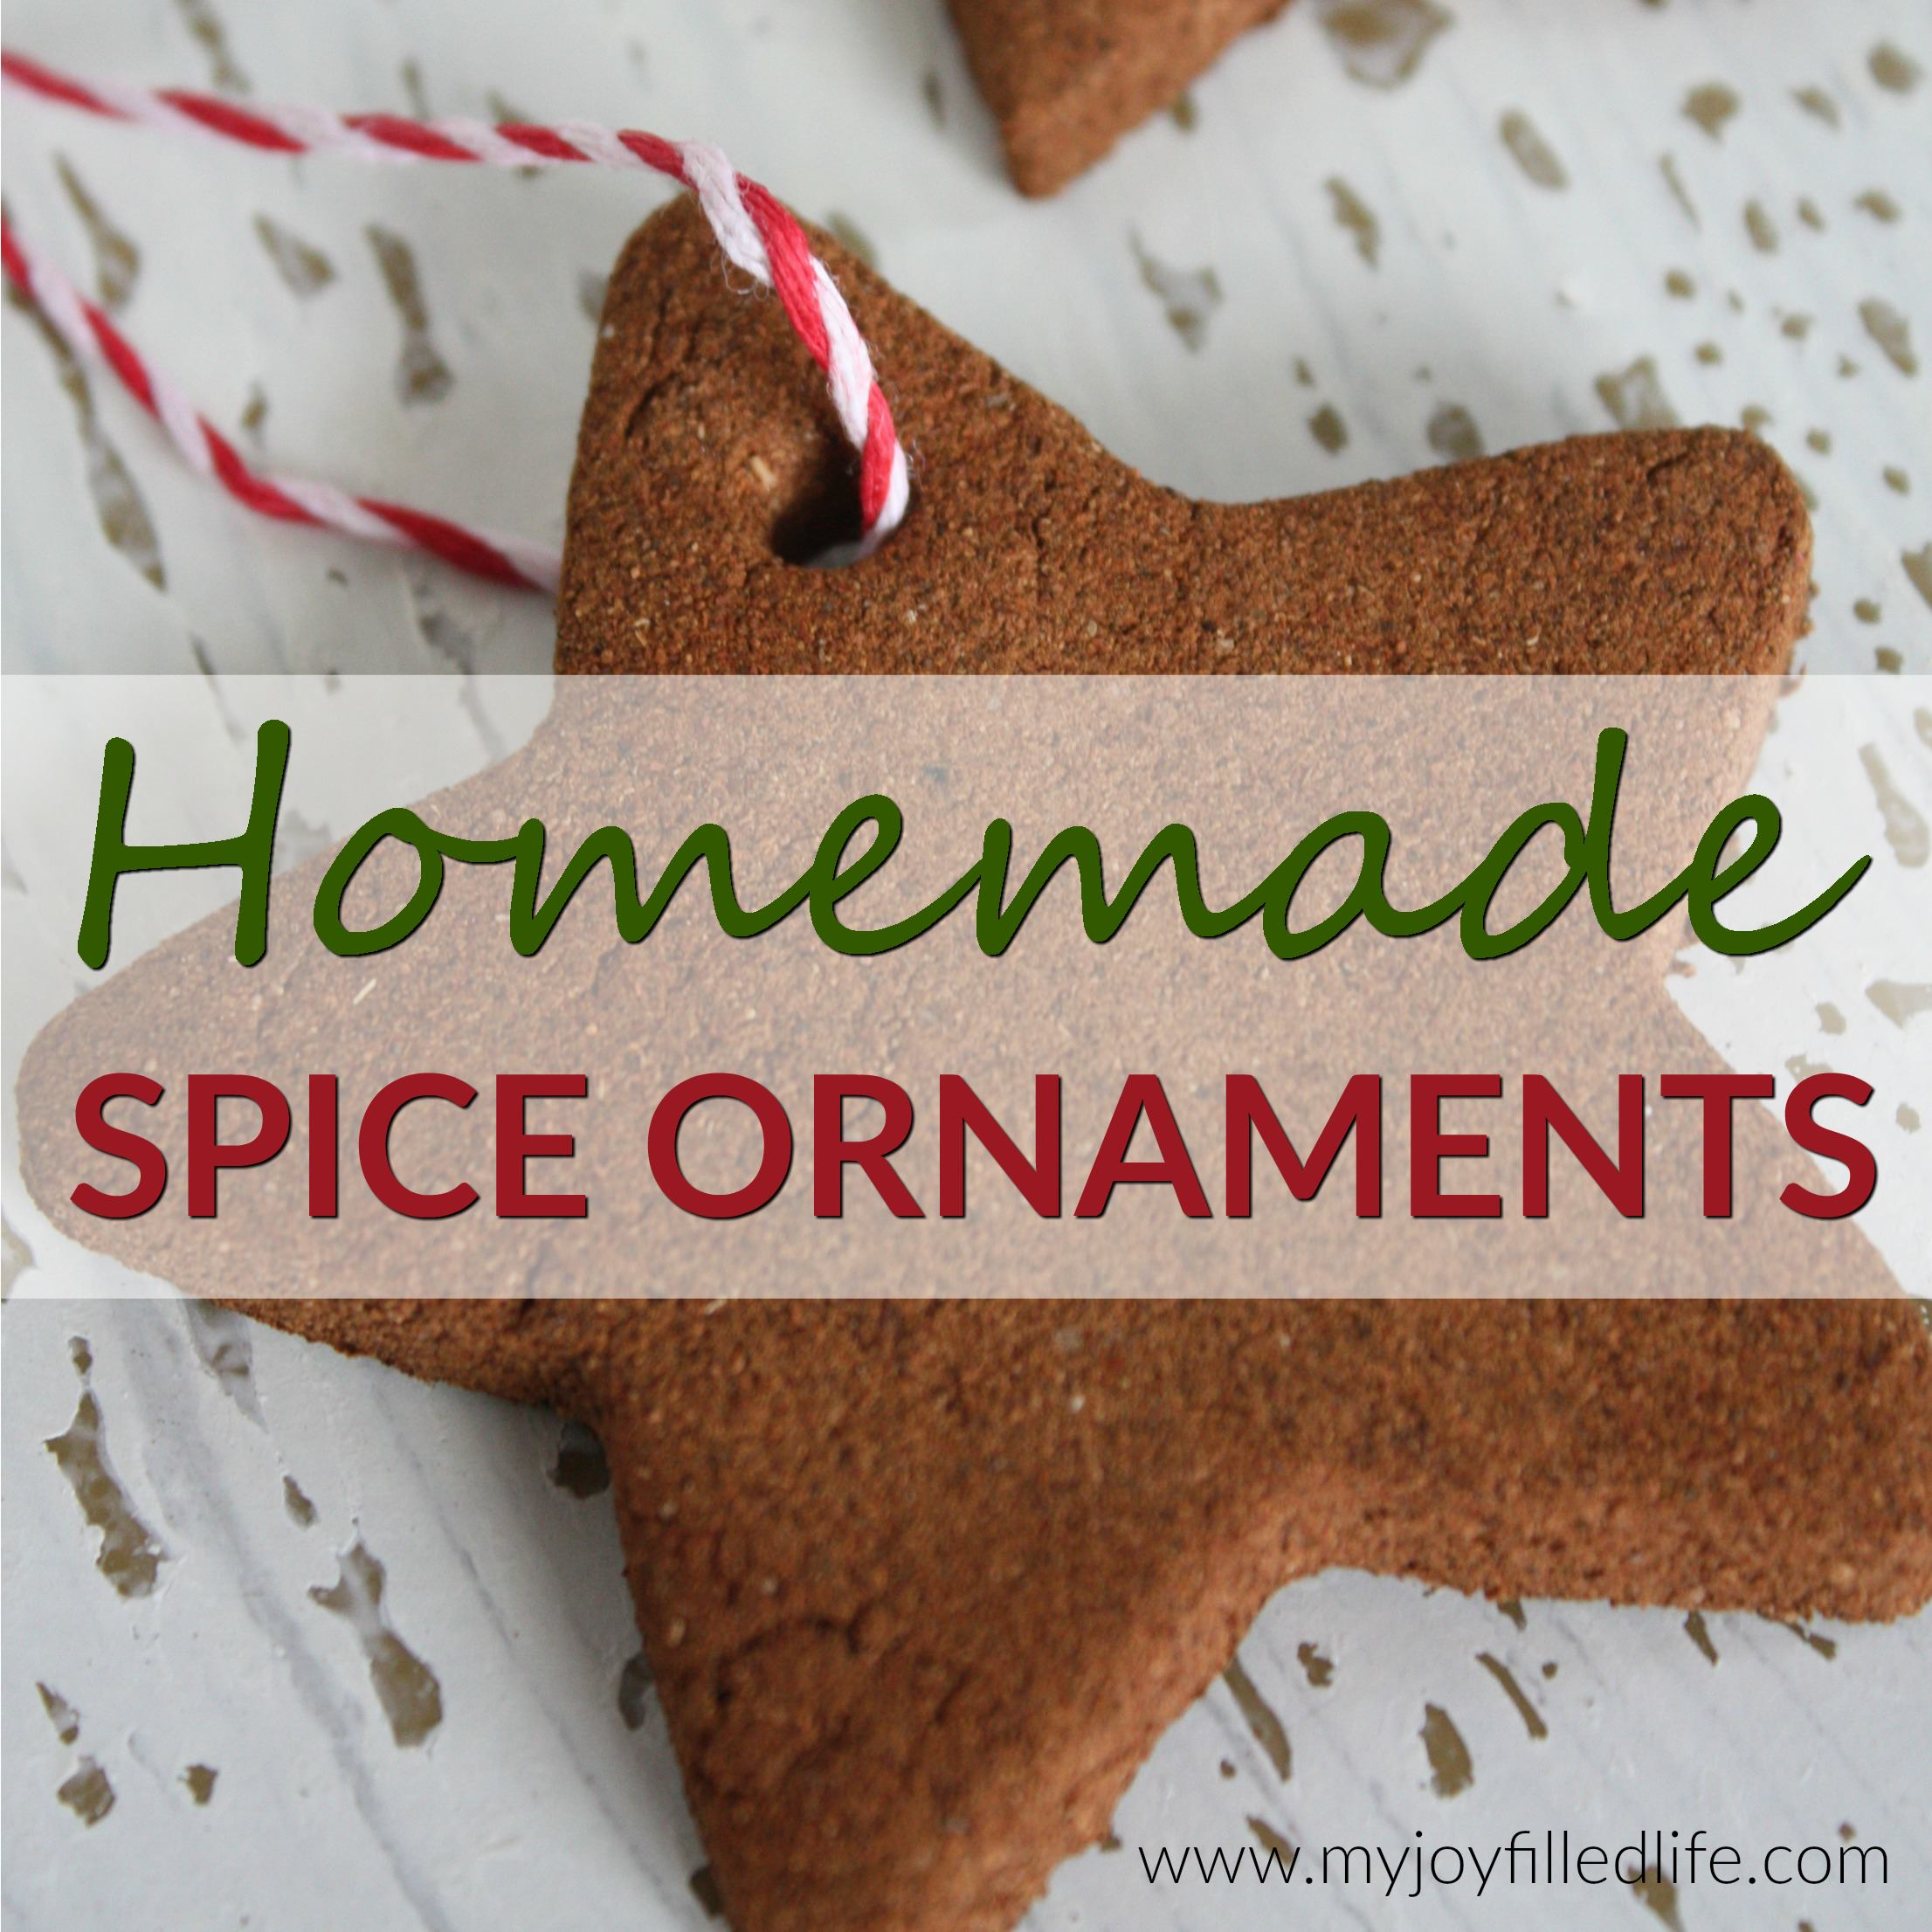 Homemade Spice Ornaments